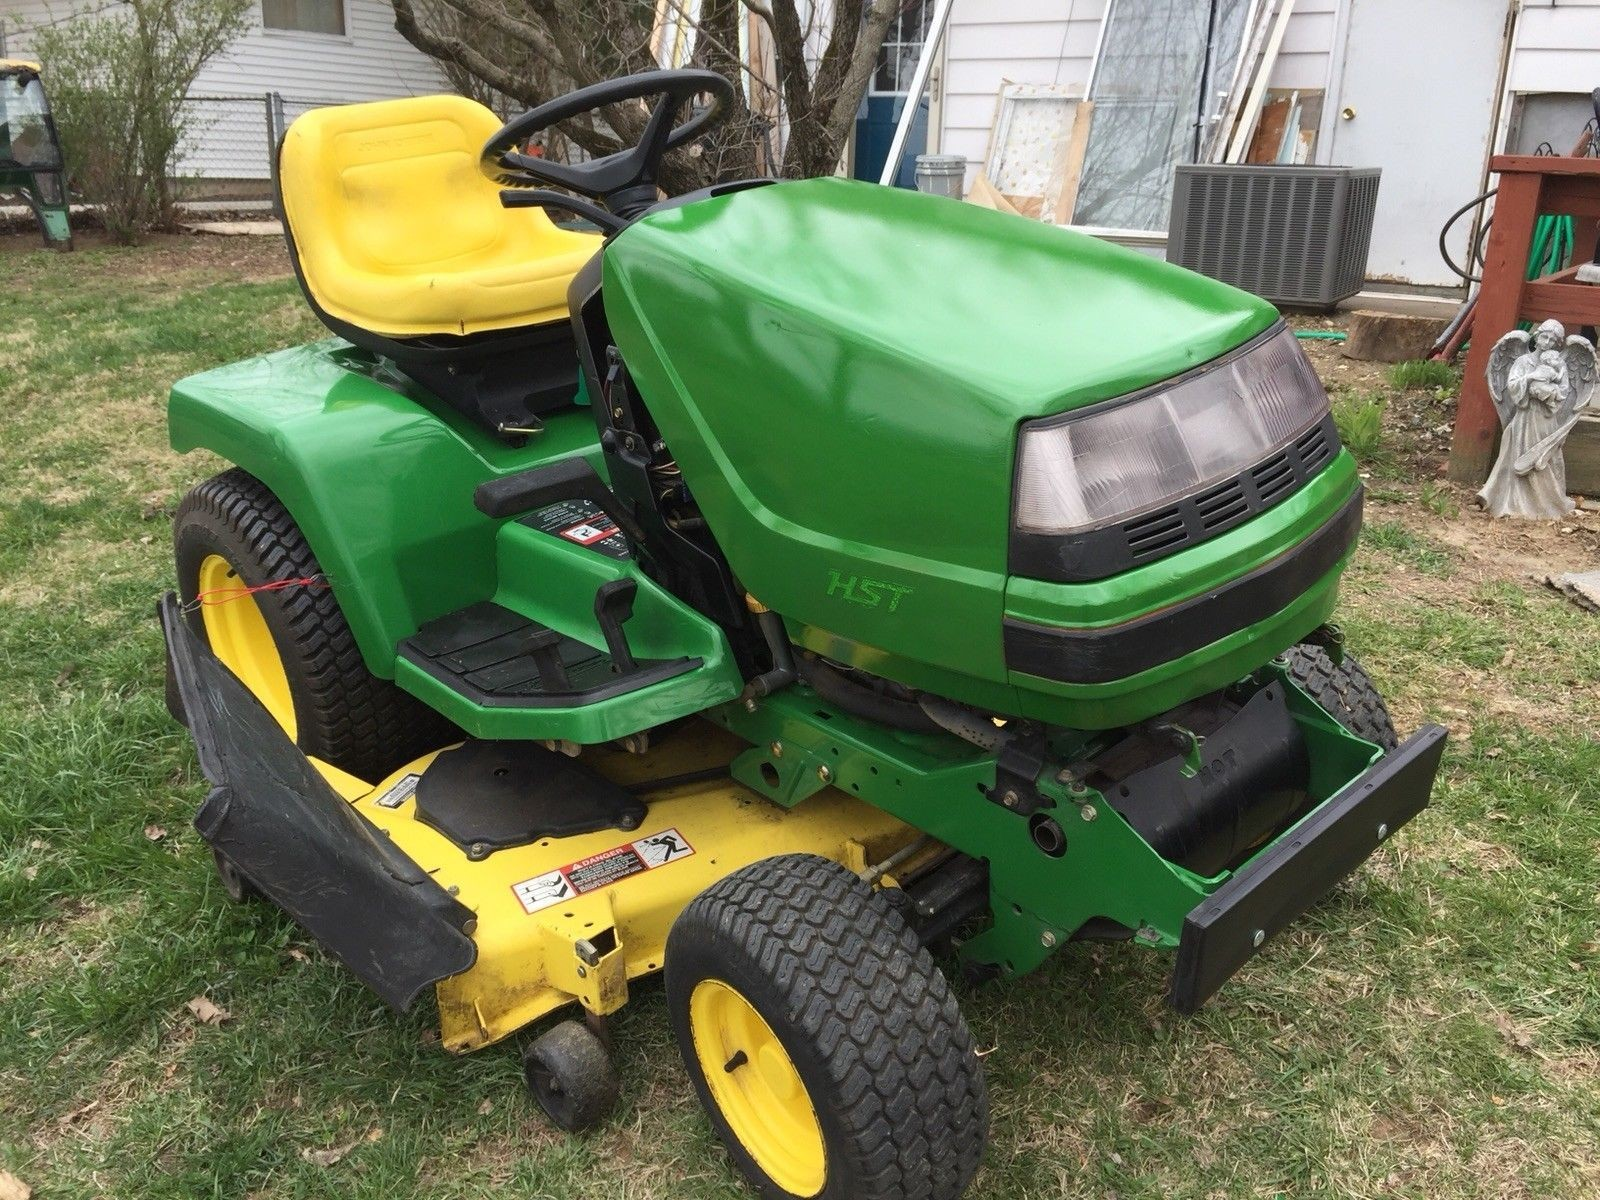 John Deere Modle 345 Electrical John Deere 345 Jd Lawn Mower Tractor W 20hp and 50 Similar Items Of John Deere Modle 345 Electrical